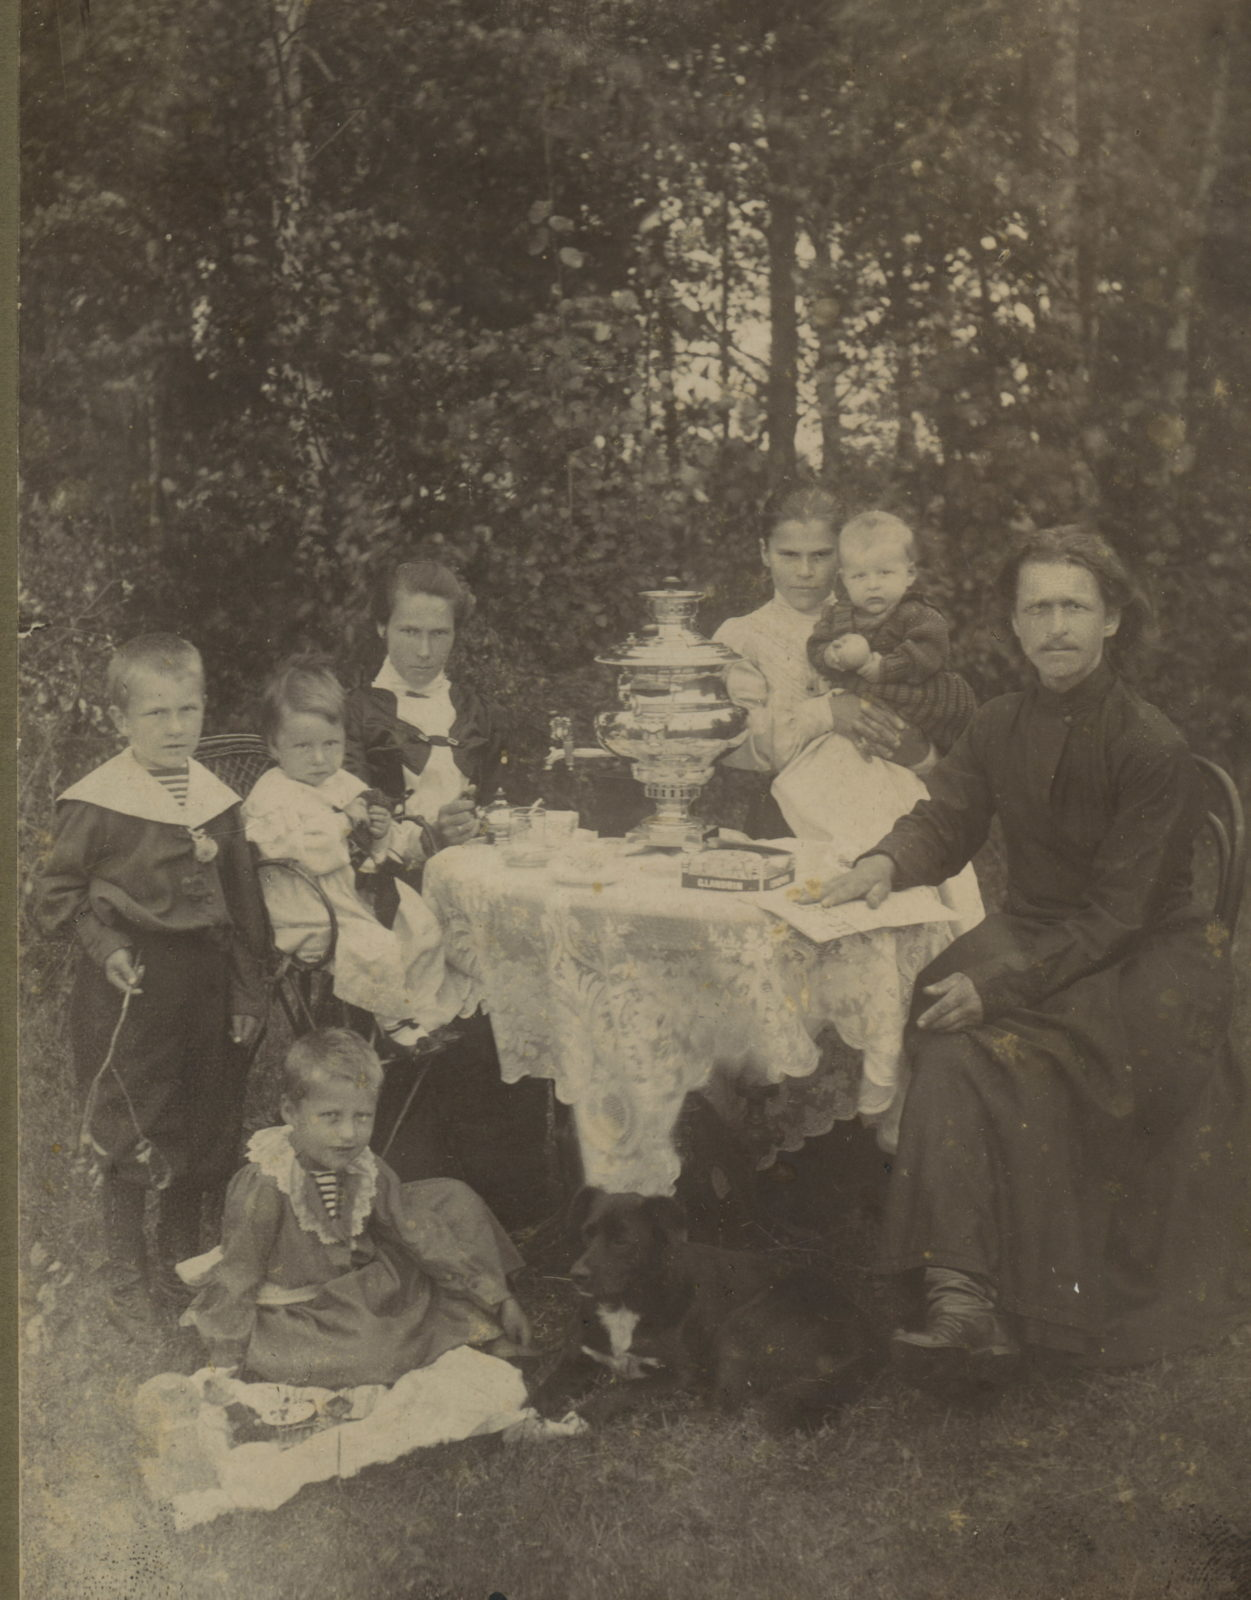 Murom, The priest's family is drinking tea. Murom, 1900 - 1910